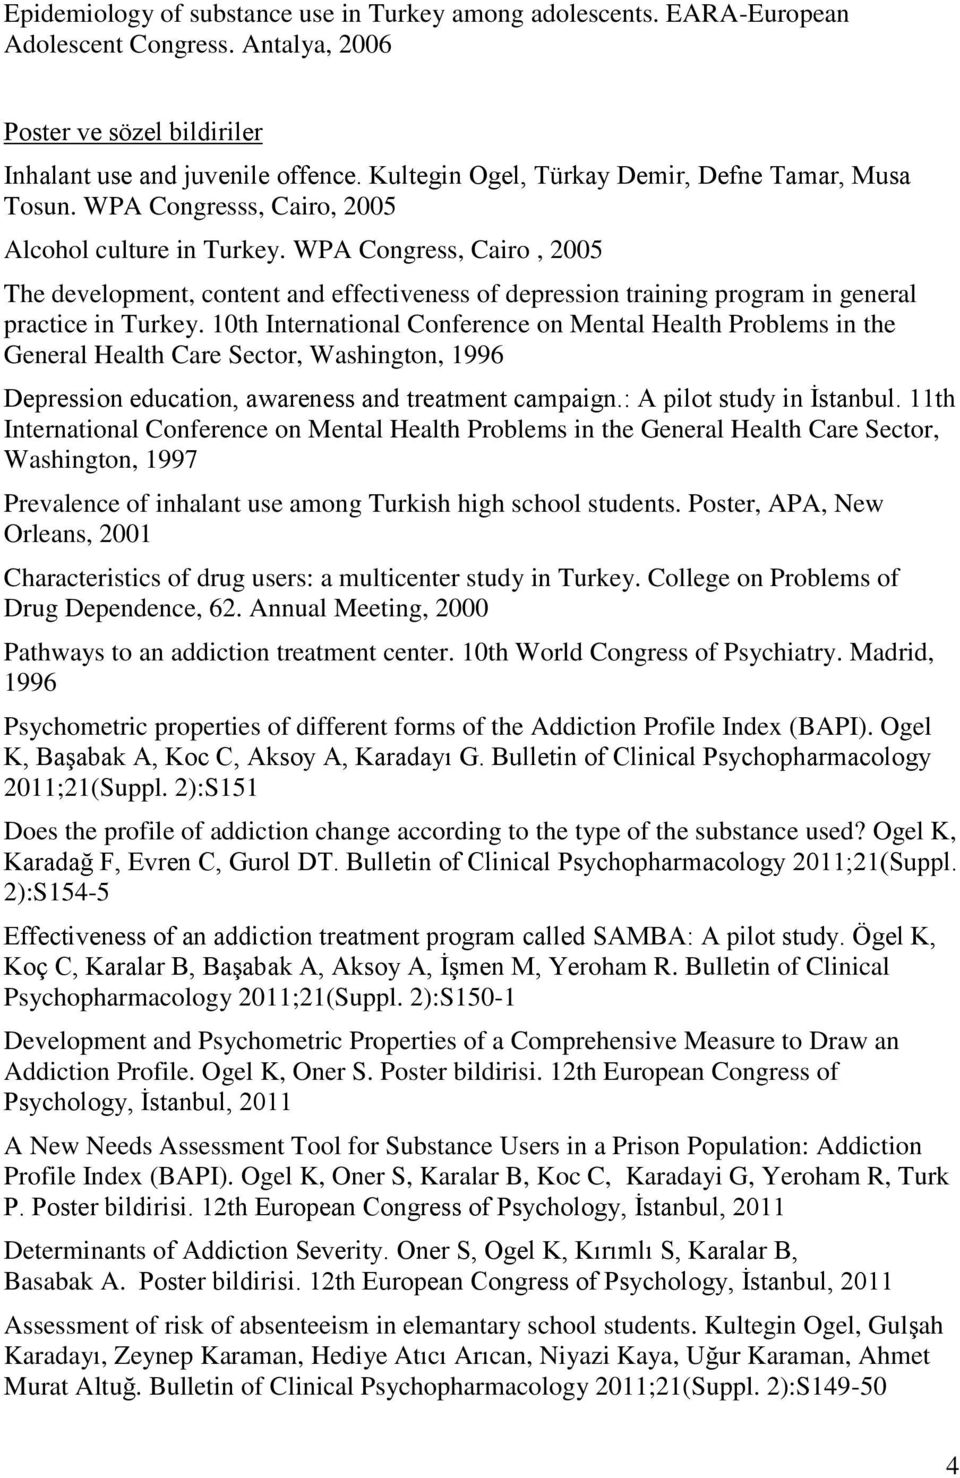 WPA Congress, Cairo, 2005 The development, content and effectiveness of depression training program in general practice in Turkey.